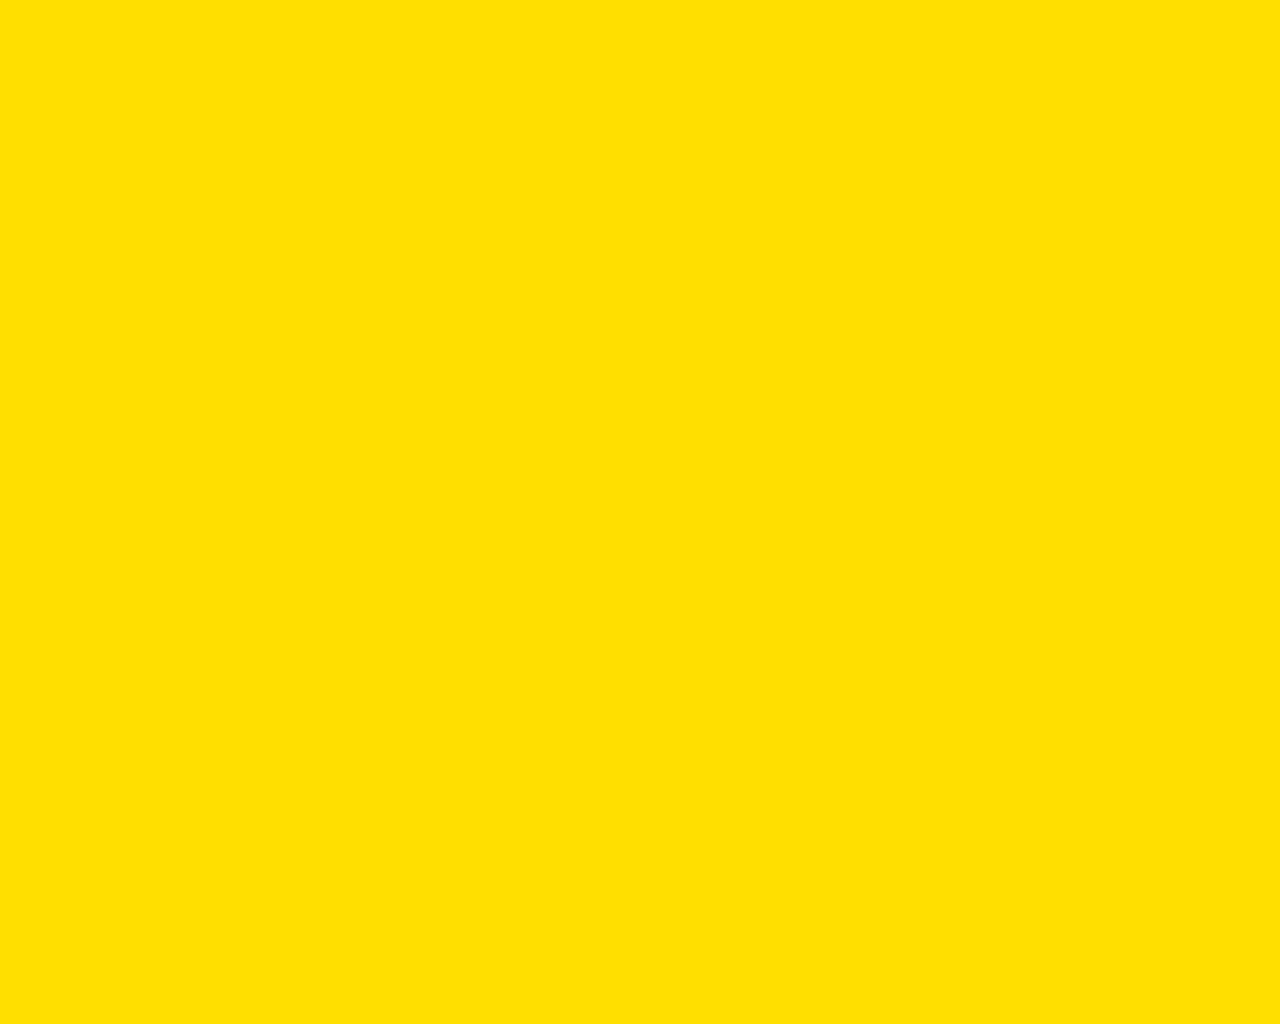 1280x1024 Golden Yellow Solid Color Background